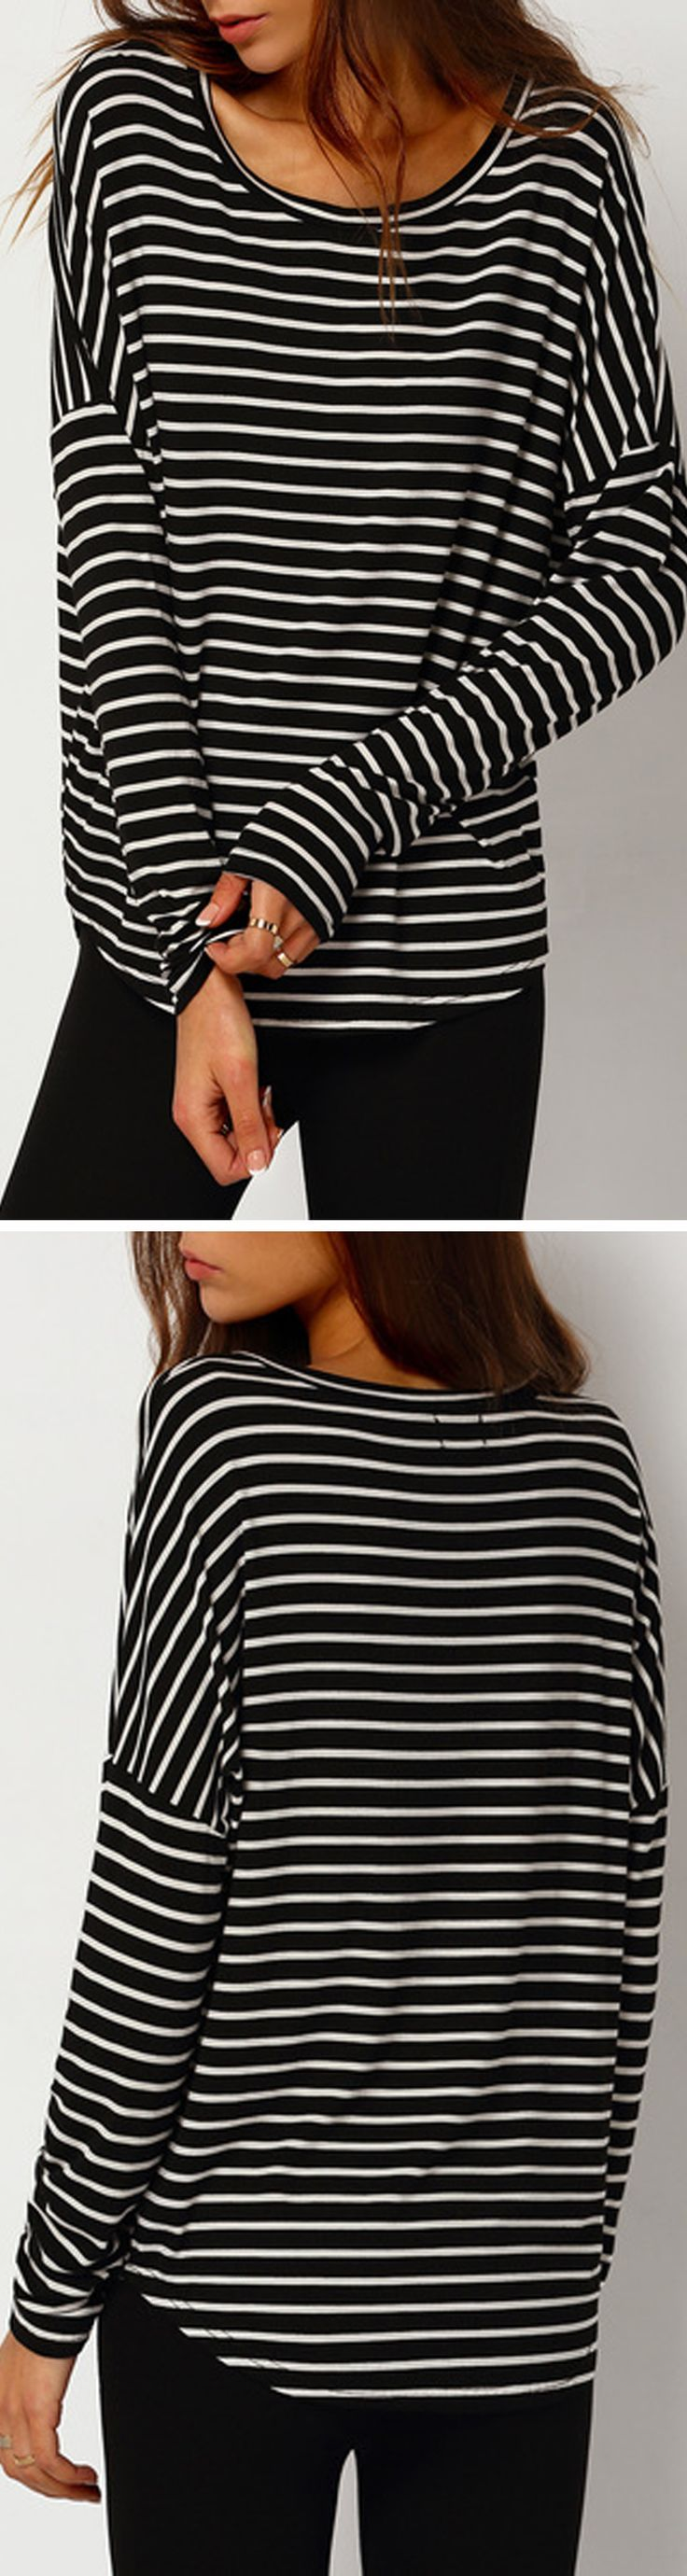 "Classic stripe cotton shirt with long sleeve at <a href=""http://www.romwe.com"" rel=""nofollow"" target=""_blank"">romwe.com</a>. Nice for spring travel outfit!Click for more women fashion items!"